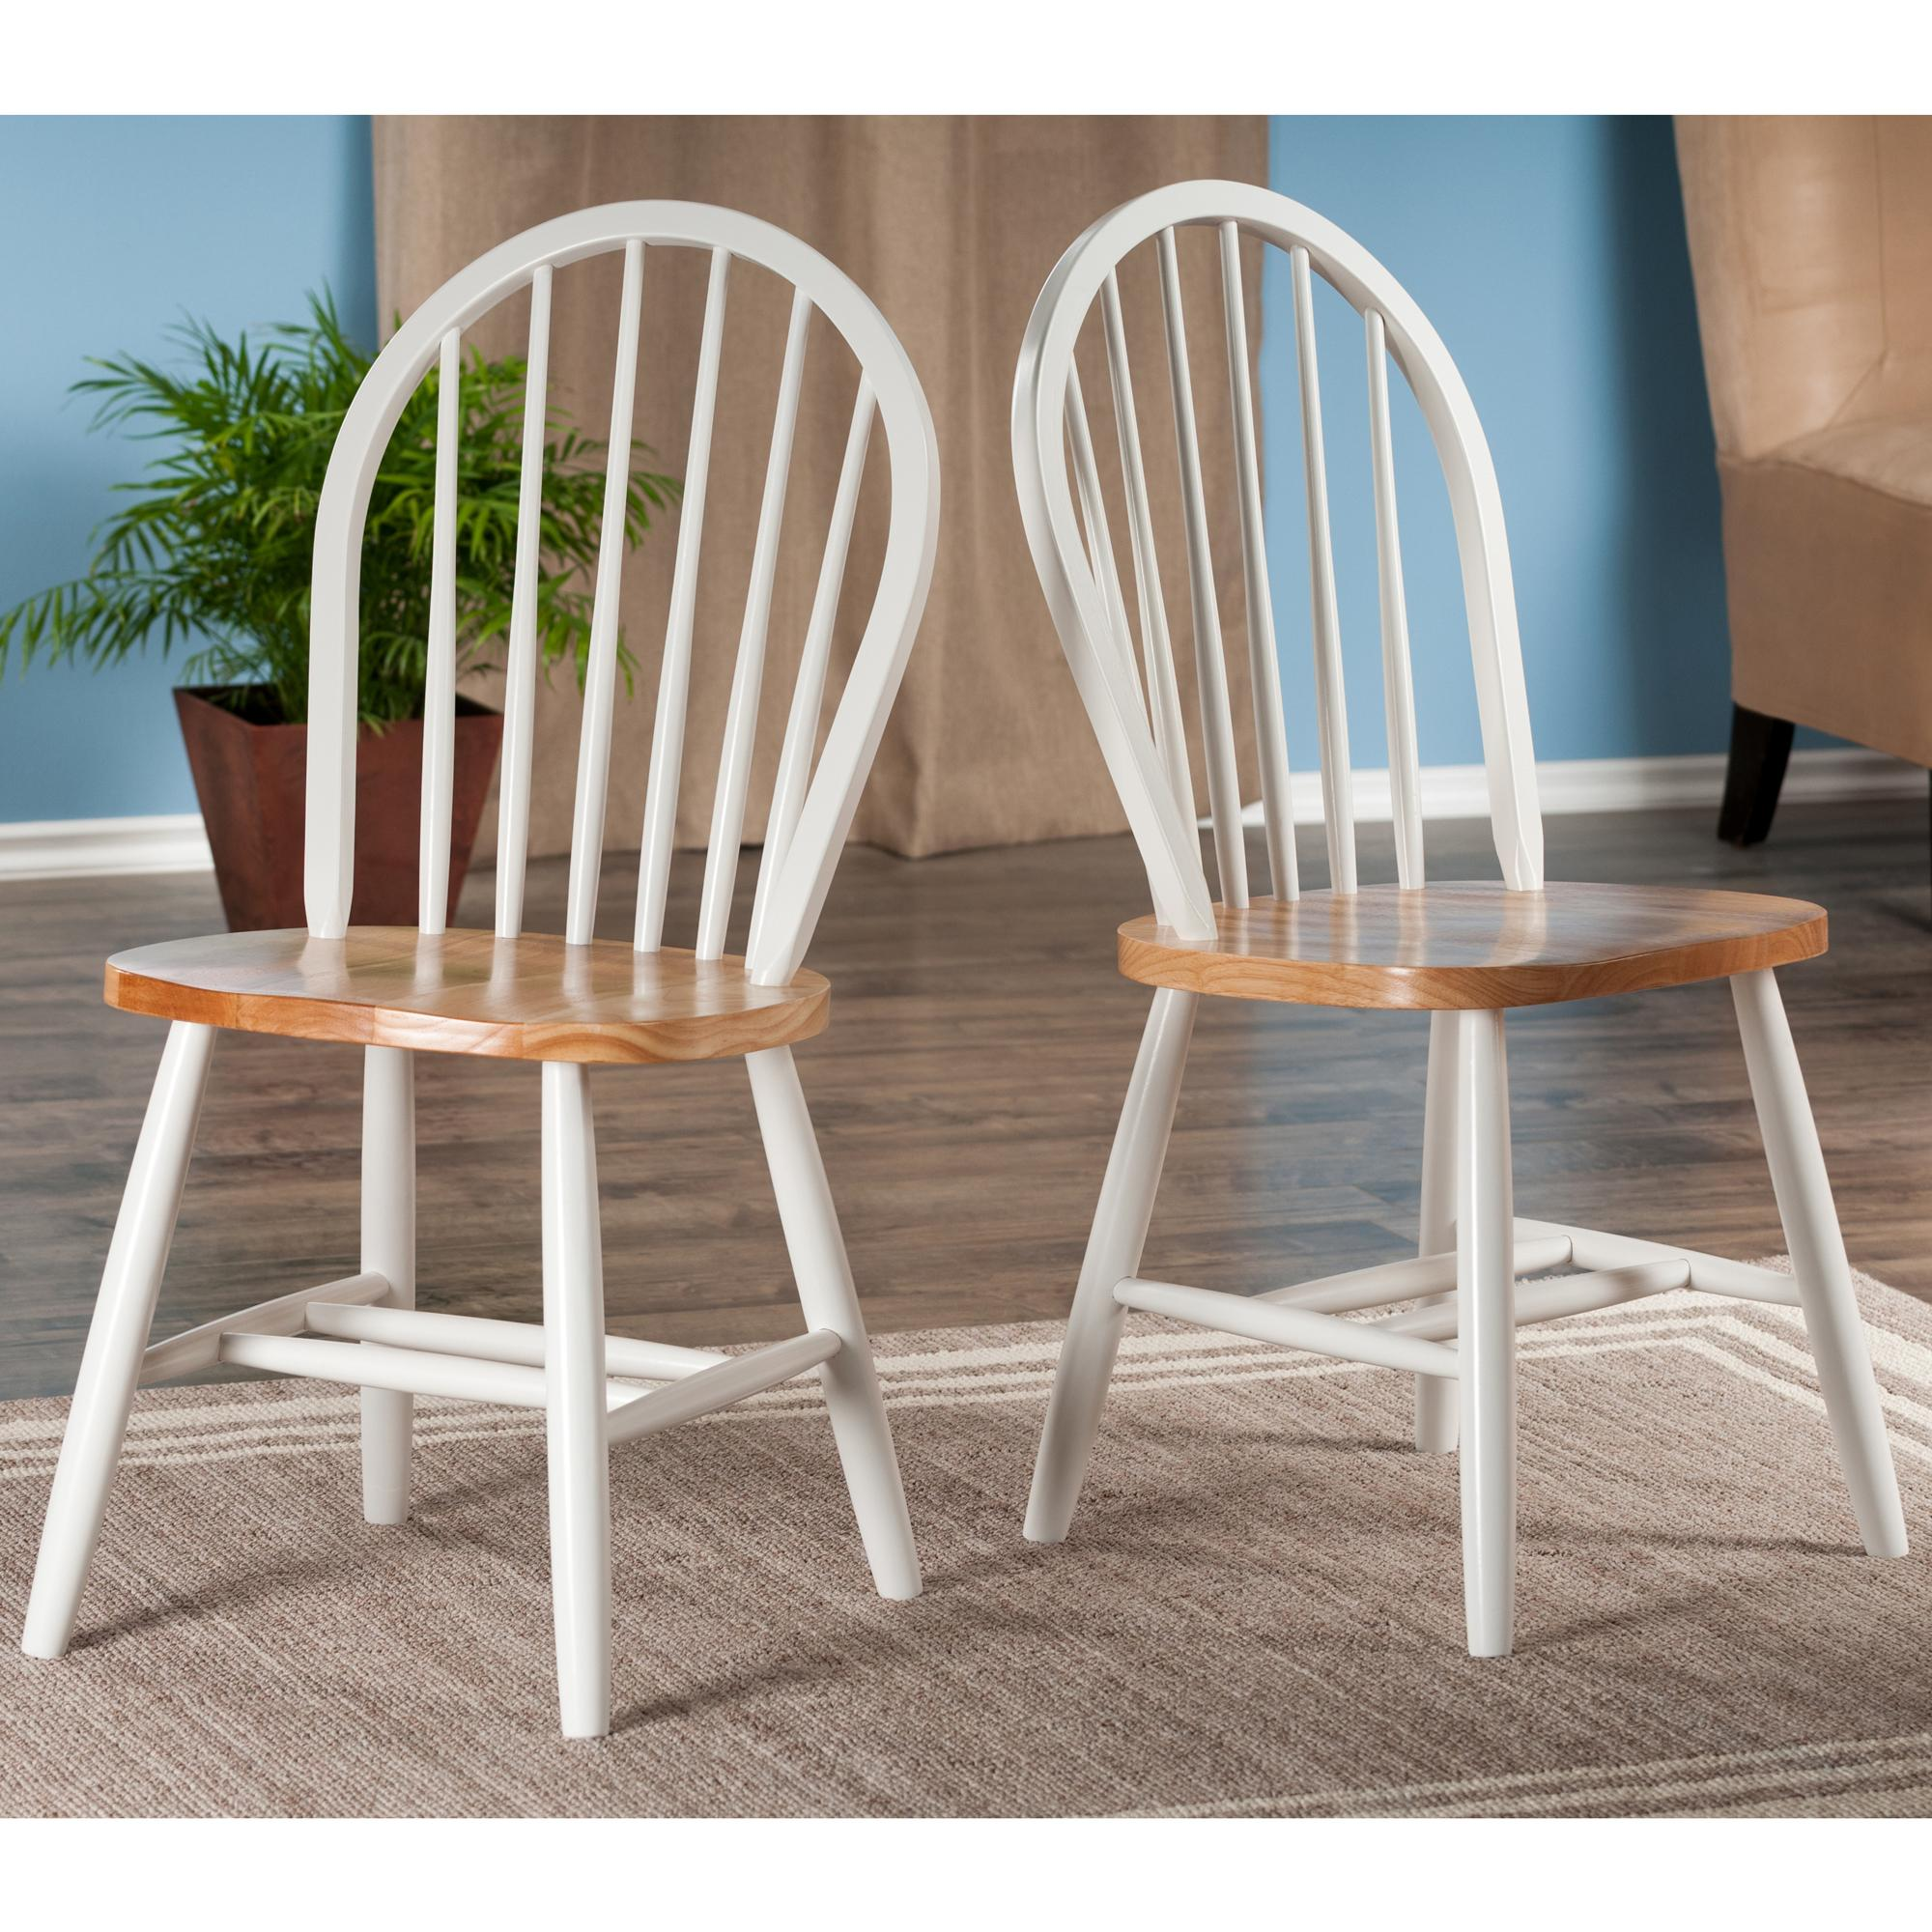 Winsome Wood Assembled 36-Inch Windsor Chairs